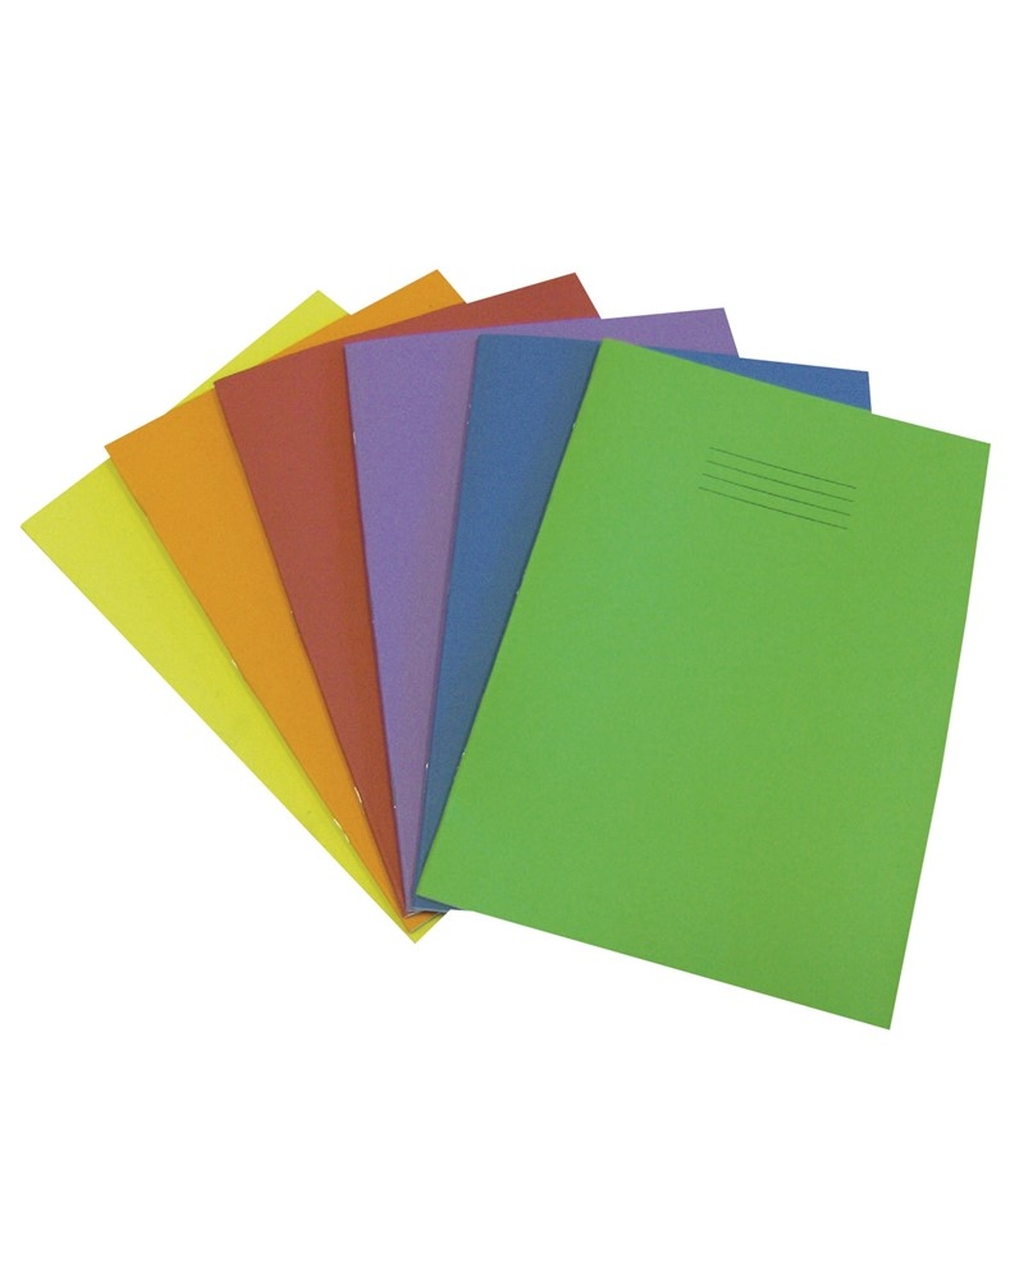 Exercise Book A4 (297 x 210mm) Buff Cover 8mm Ruled & Margin 64 Pages